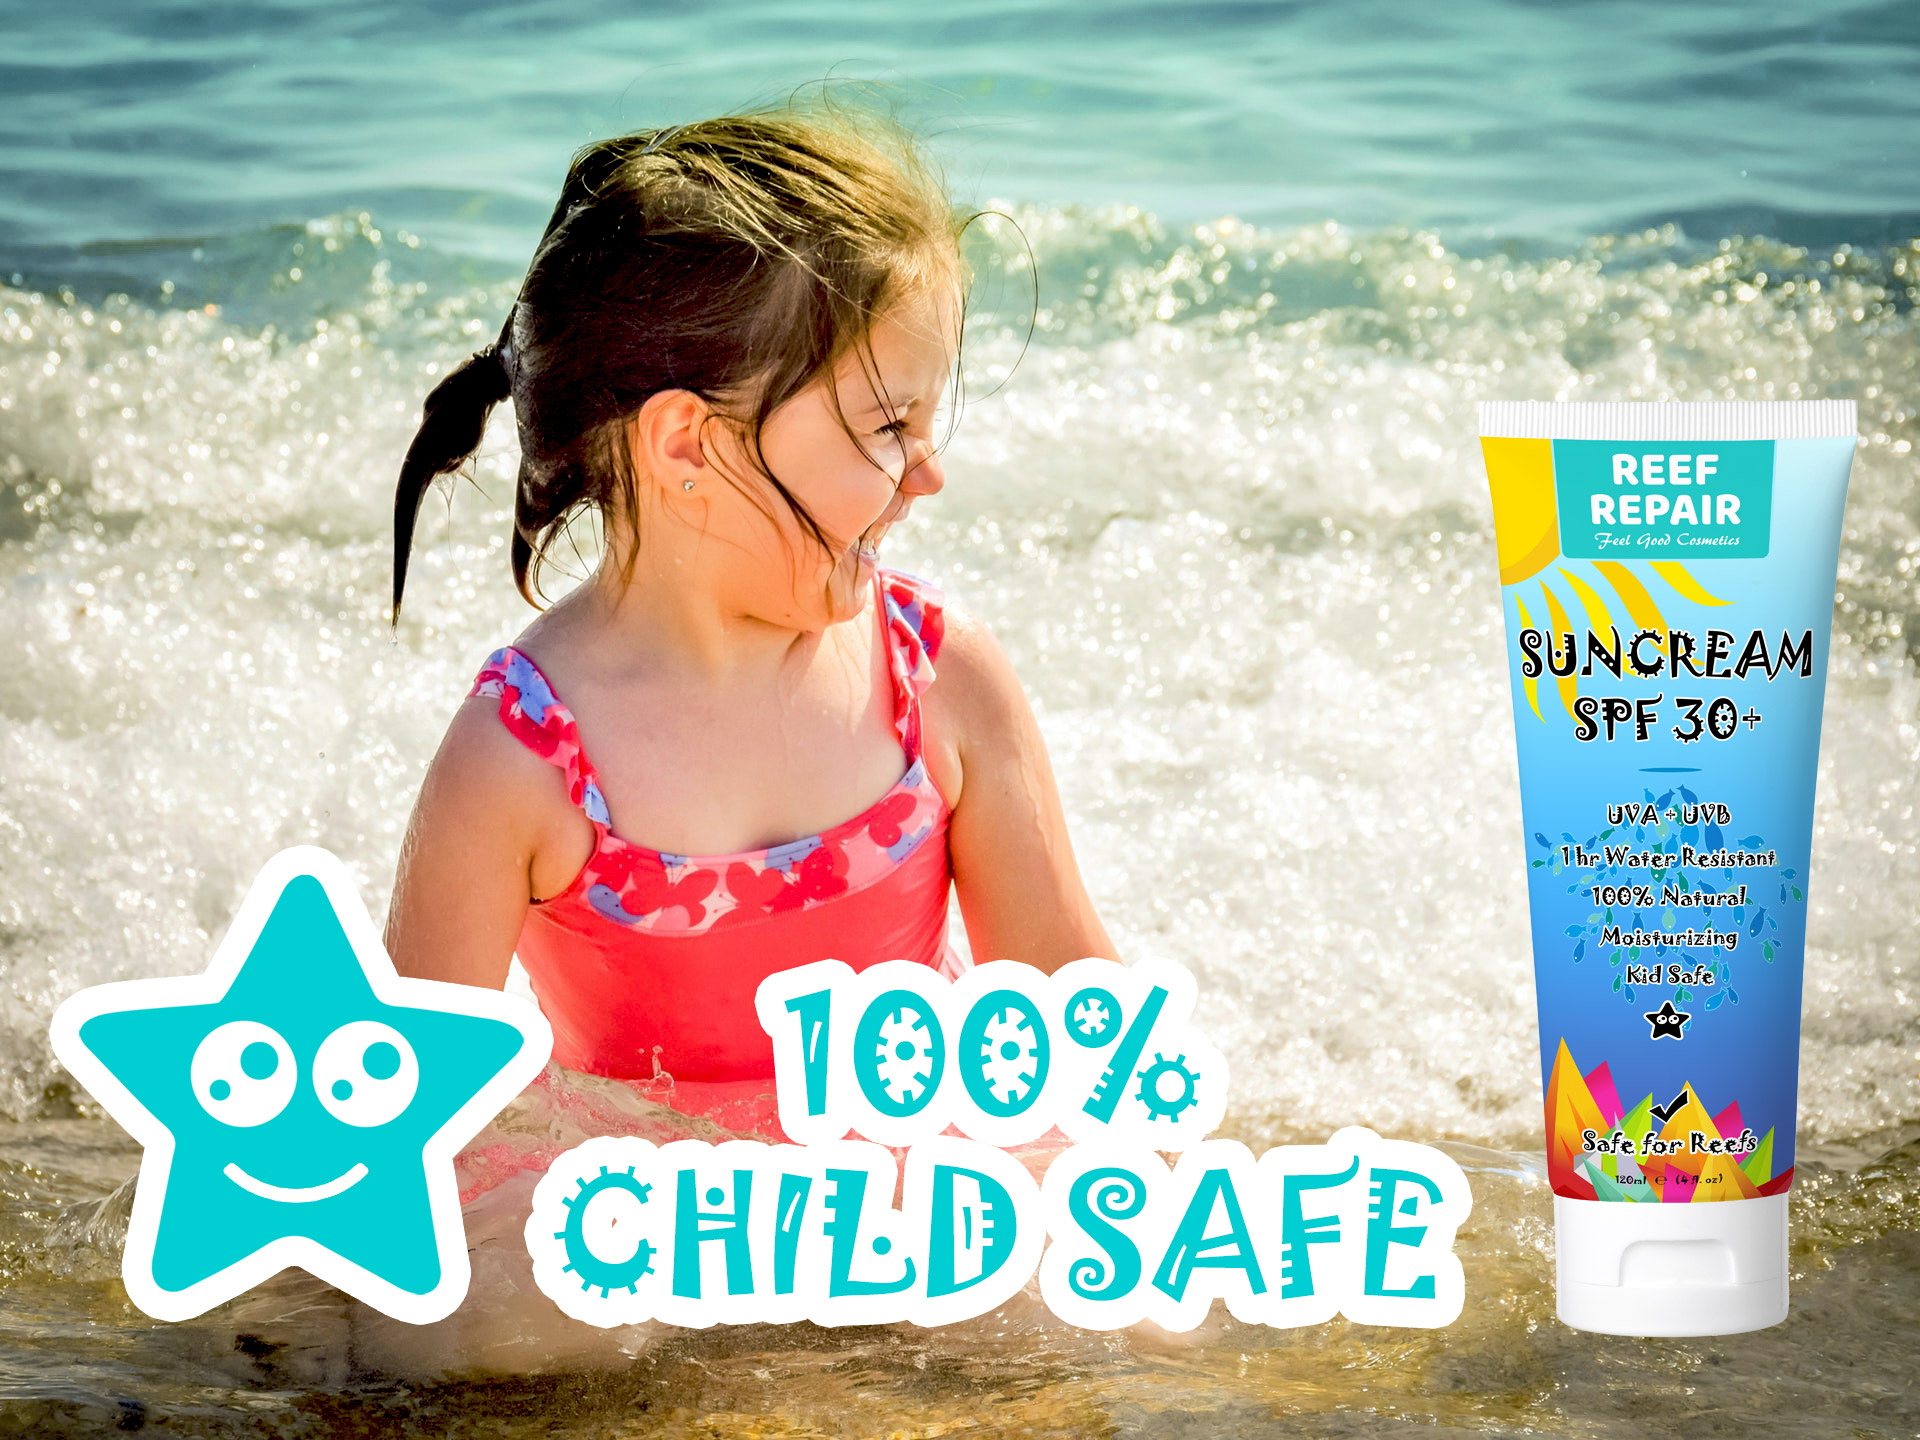 Kid Safe Sun Cream Sunscreen Spf 30 Reef Repair 120ml